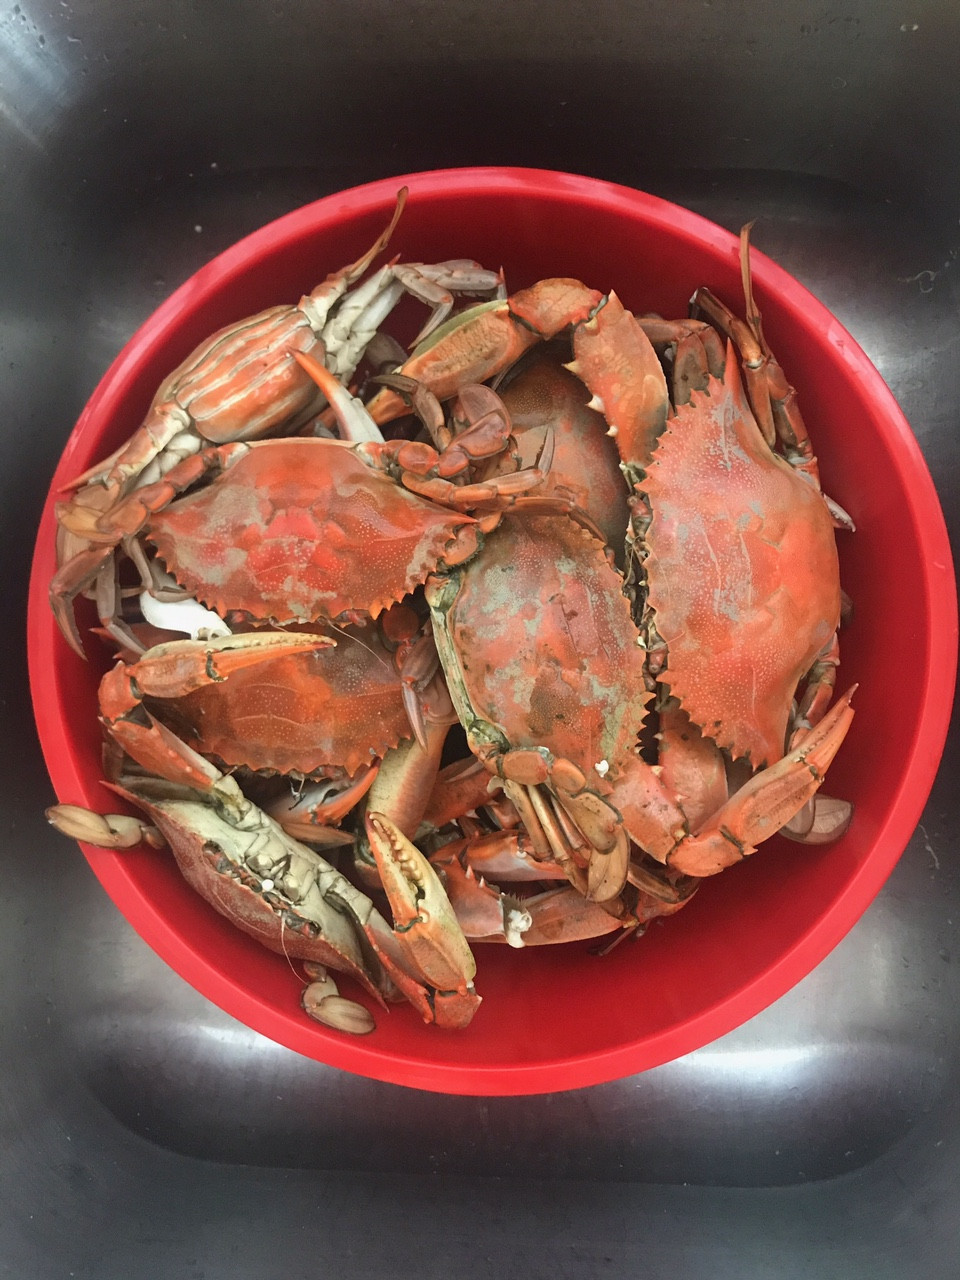 Wednesday Wonders: How Do We Catch All of Those Blue Crabs?